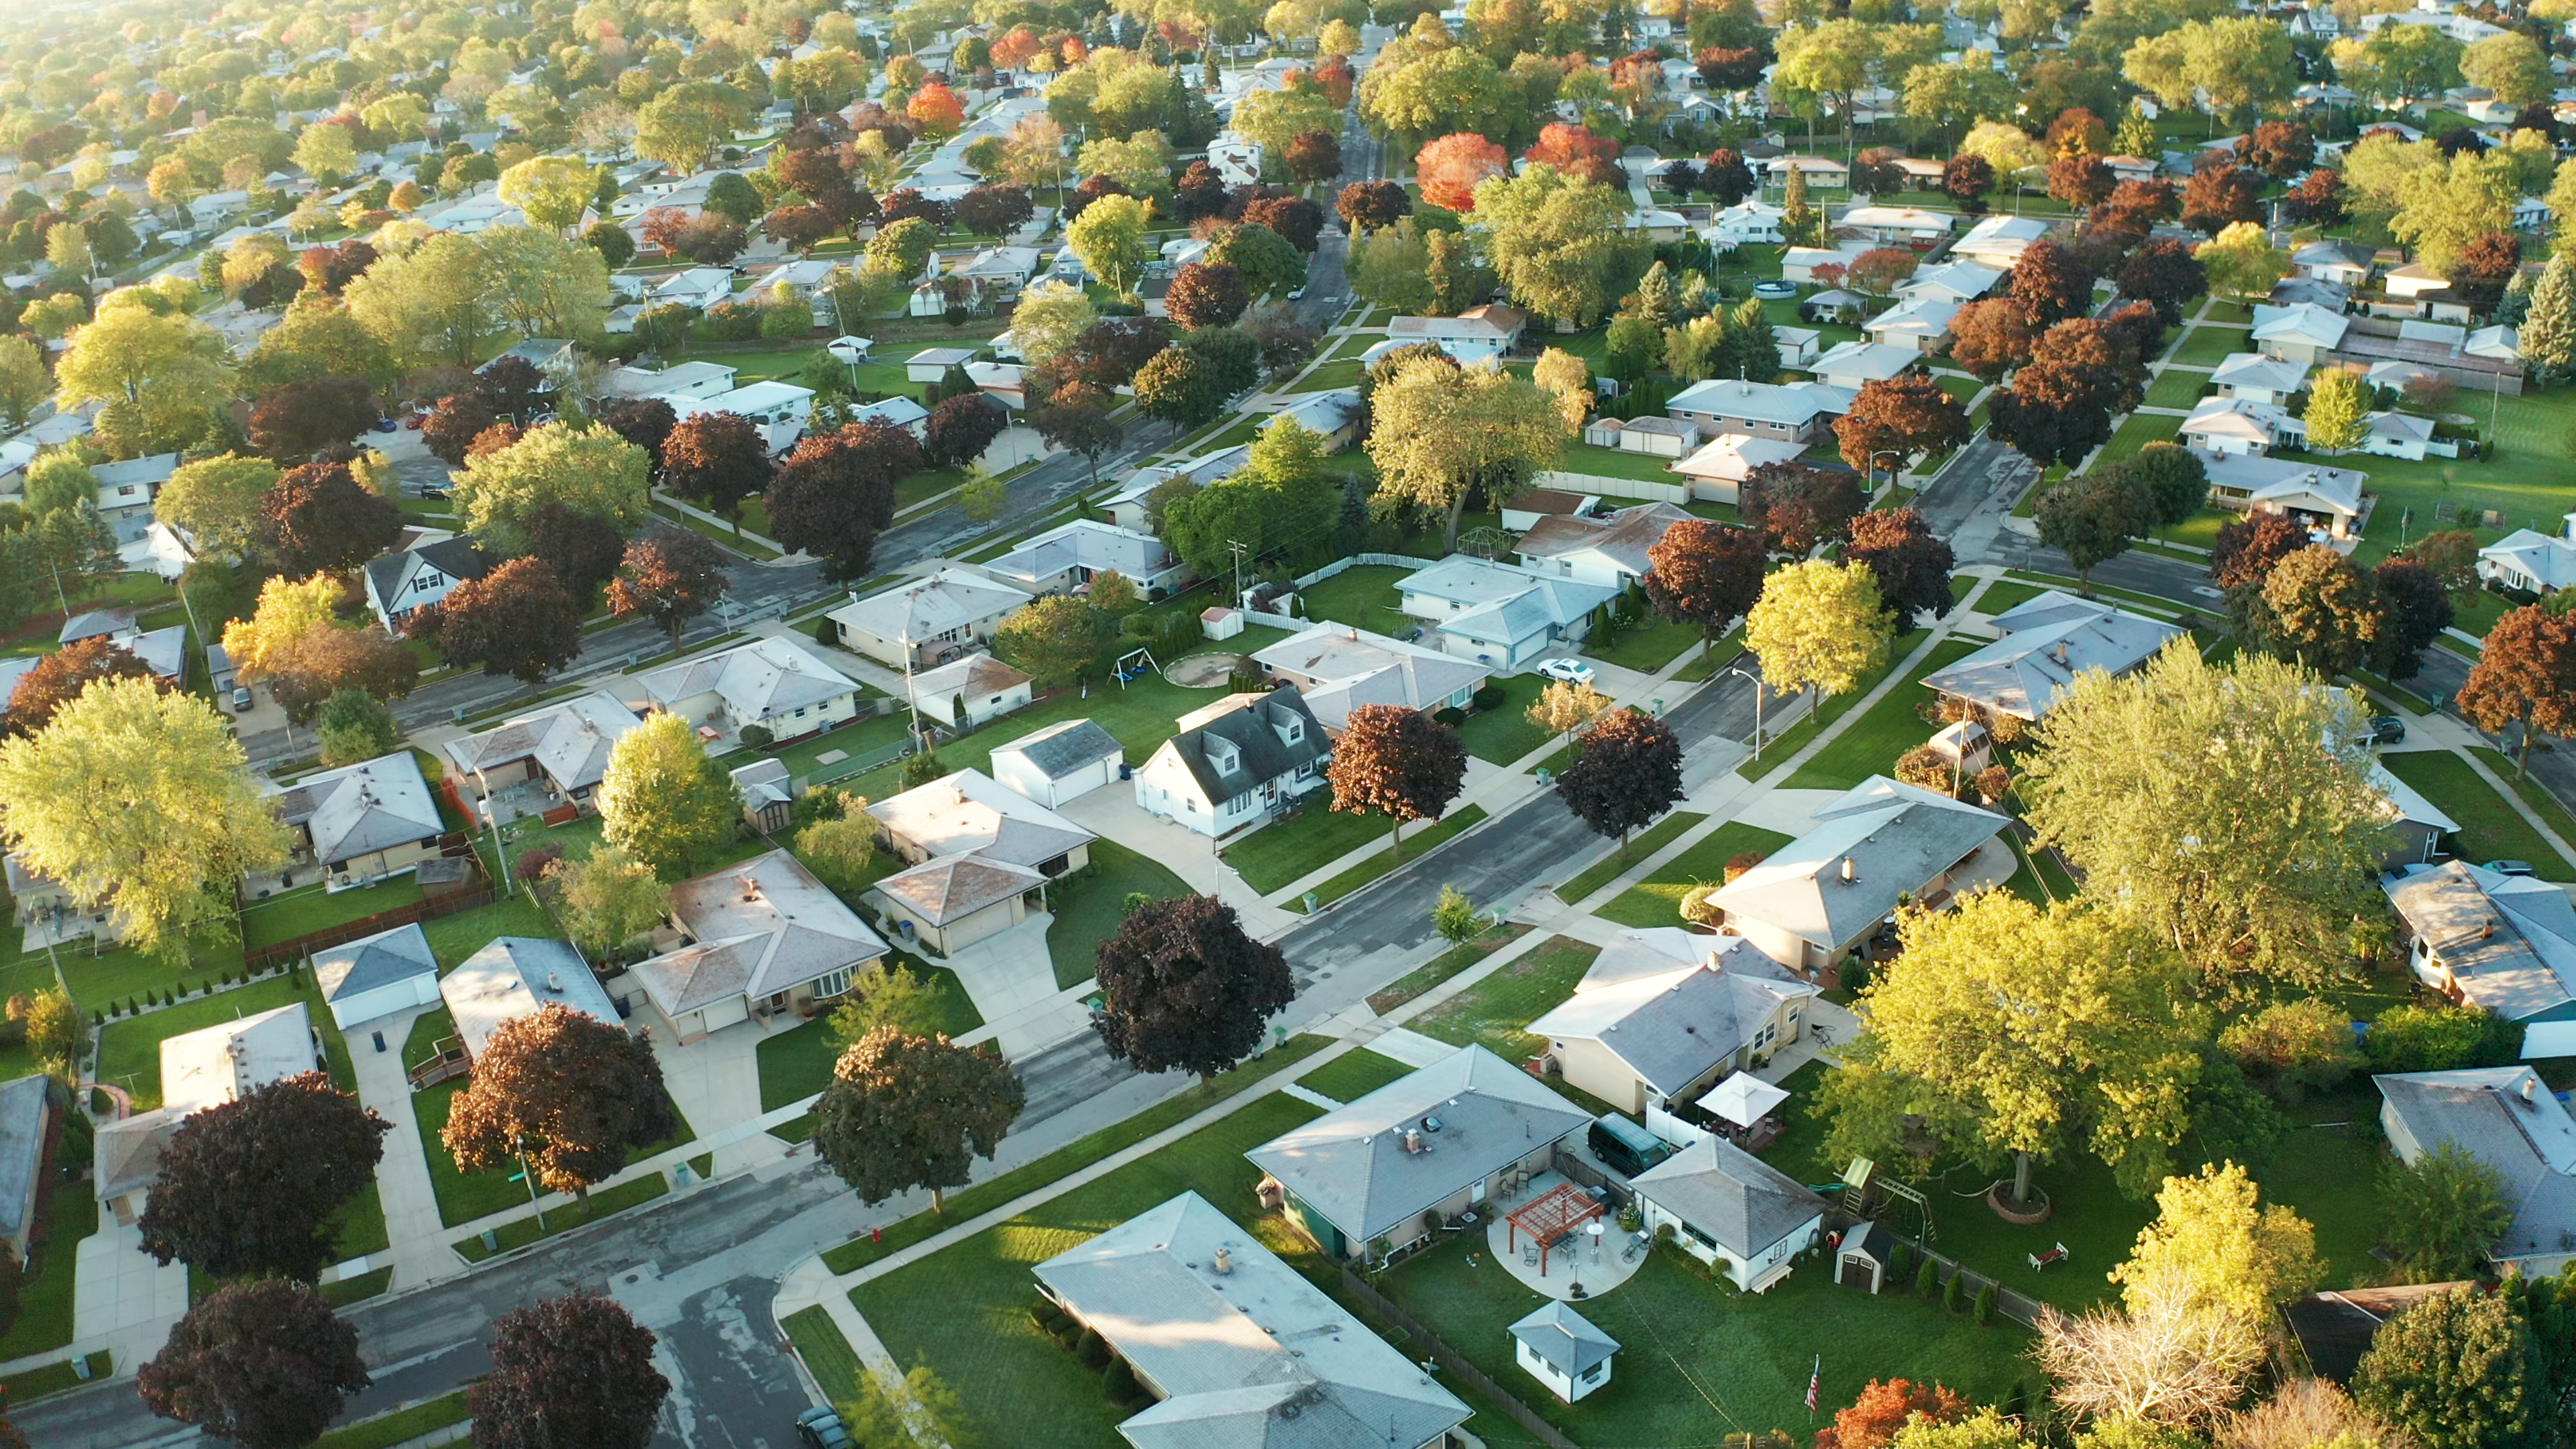 An aerial photograph of a neighborhood